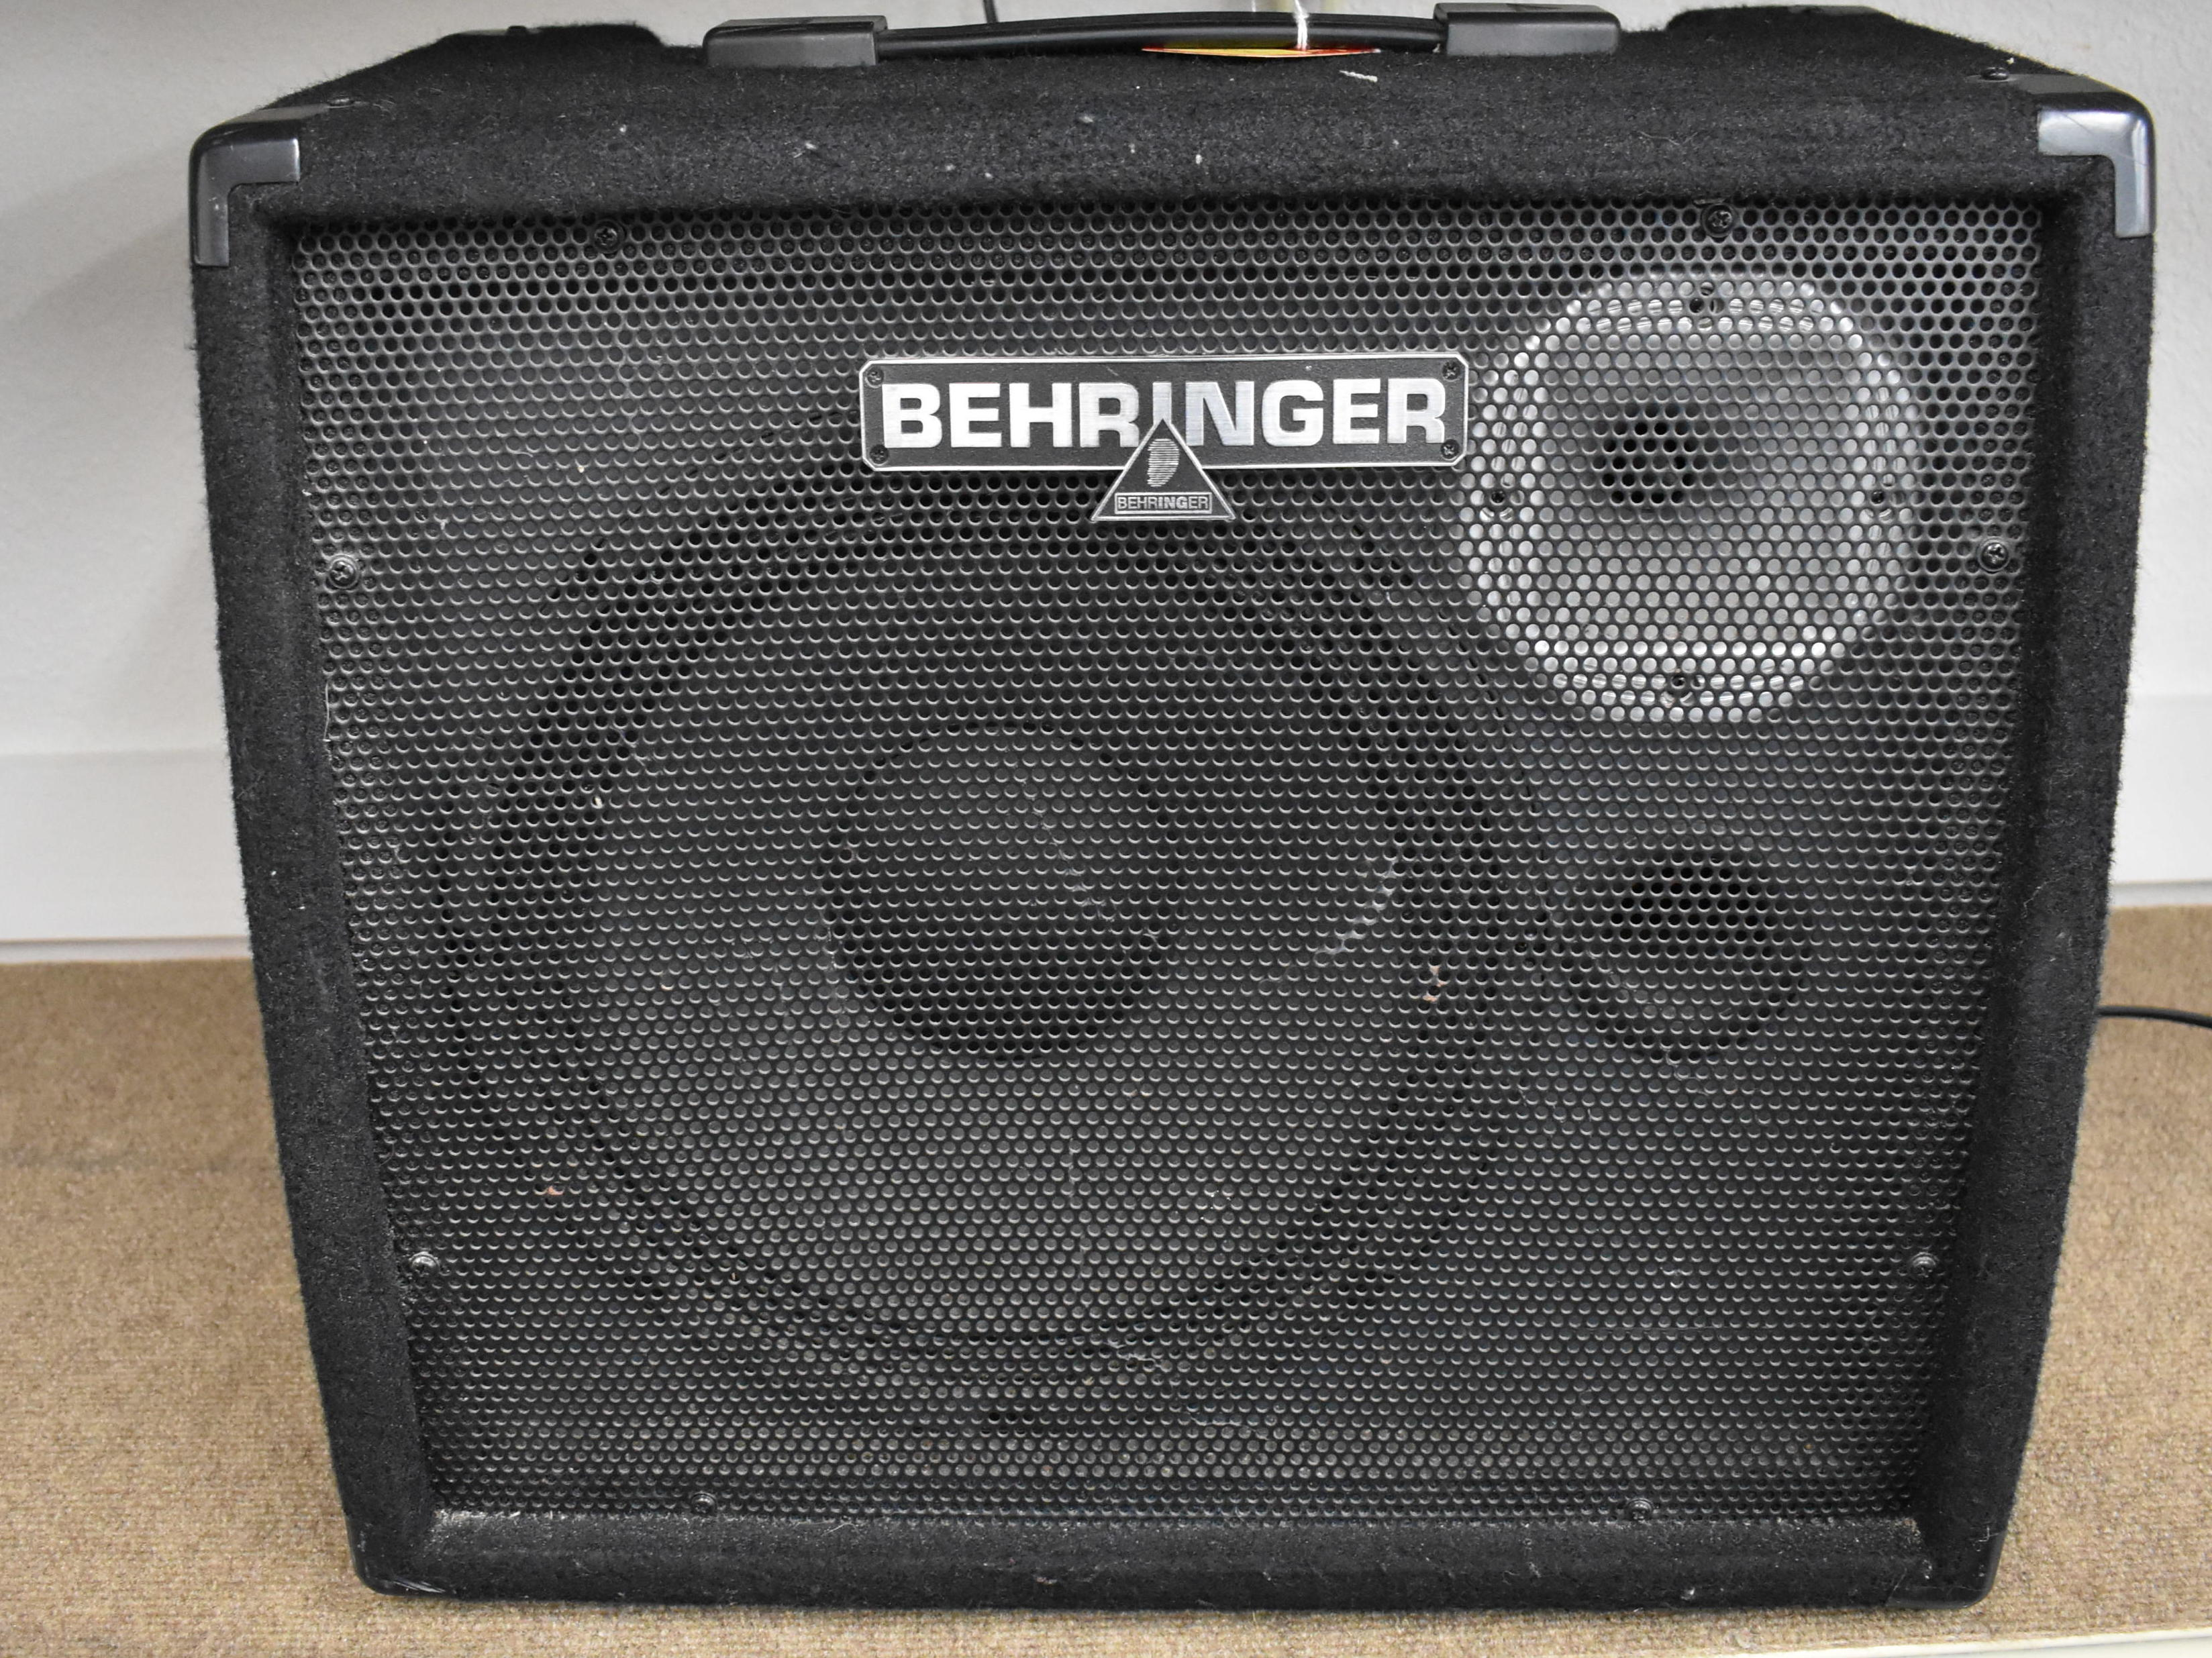 BEHRINGER - ULTRATONE K900FX - AMPLIFIER MUSICAL INSTRUMENTS